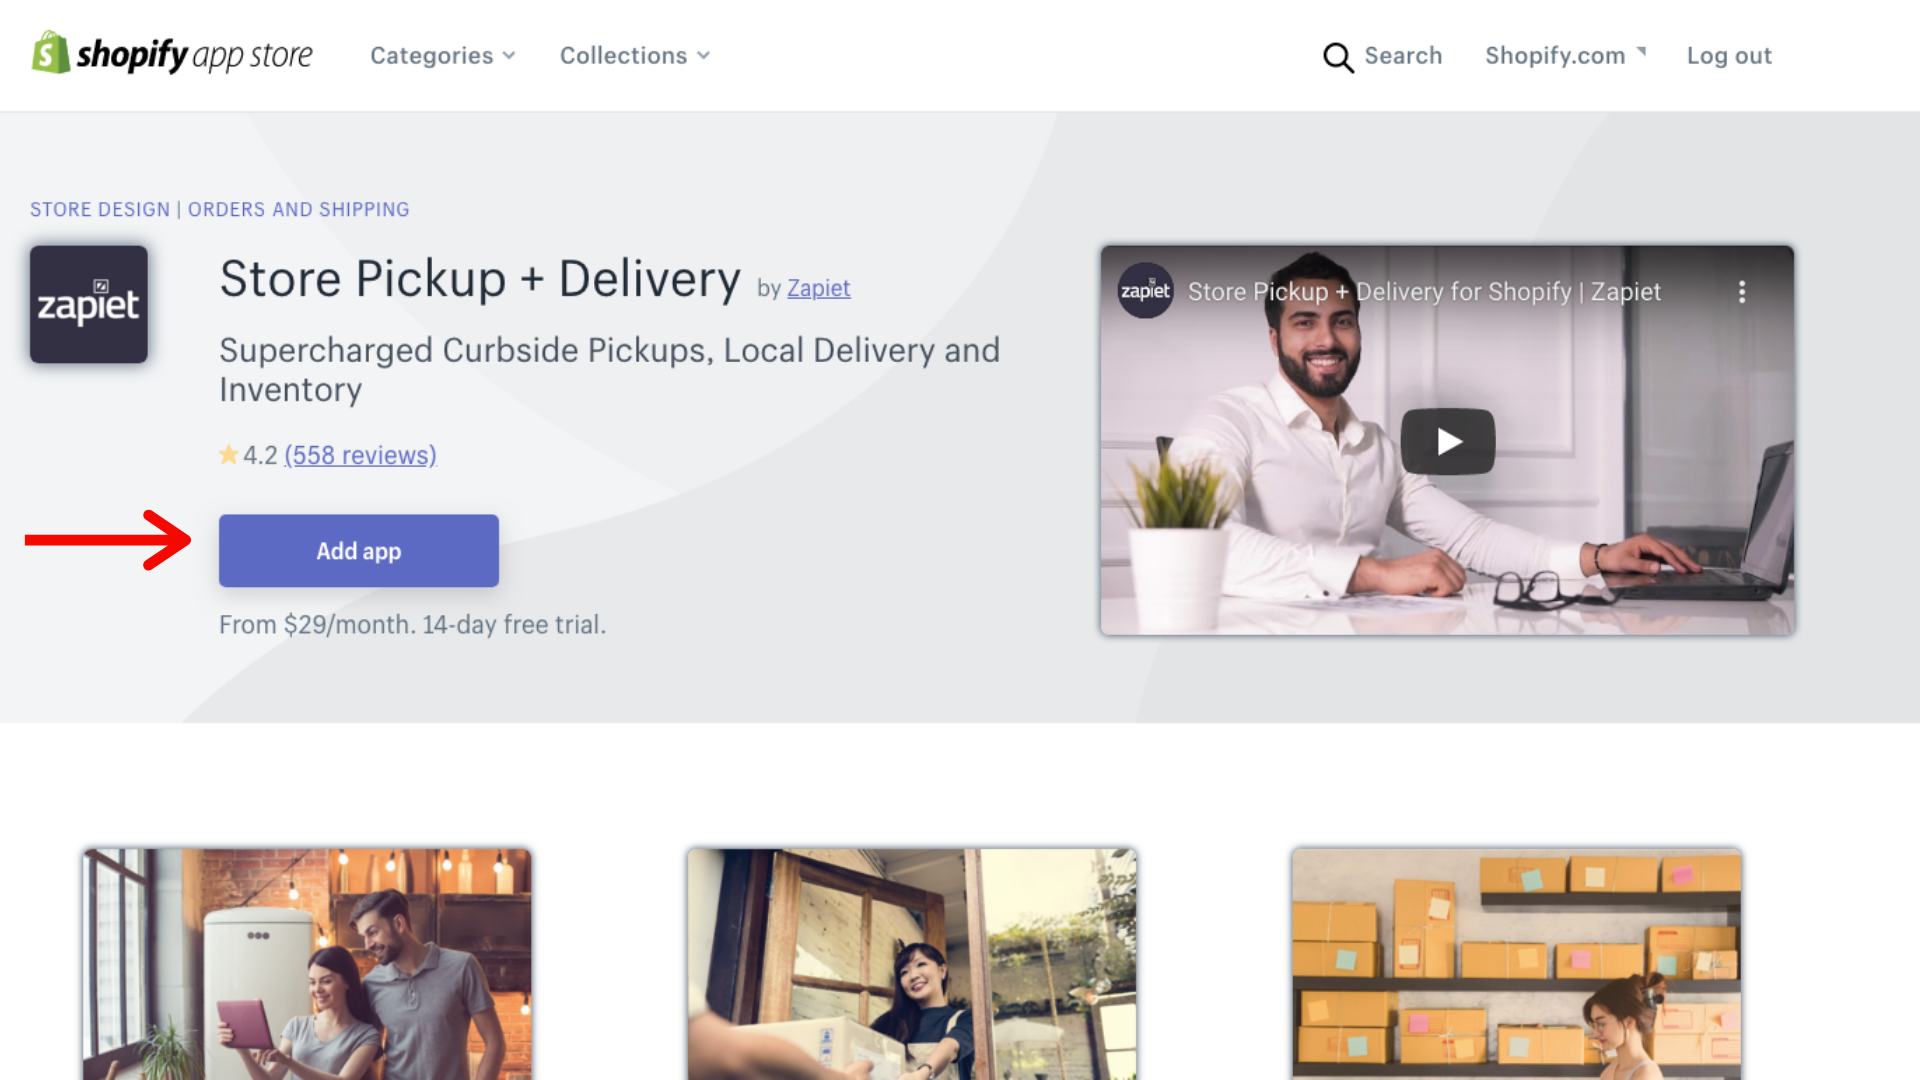 shopify express and store pickup and delivery